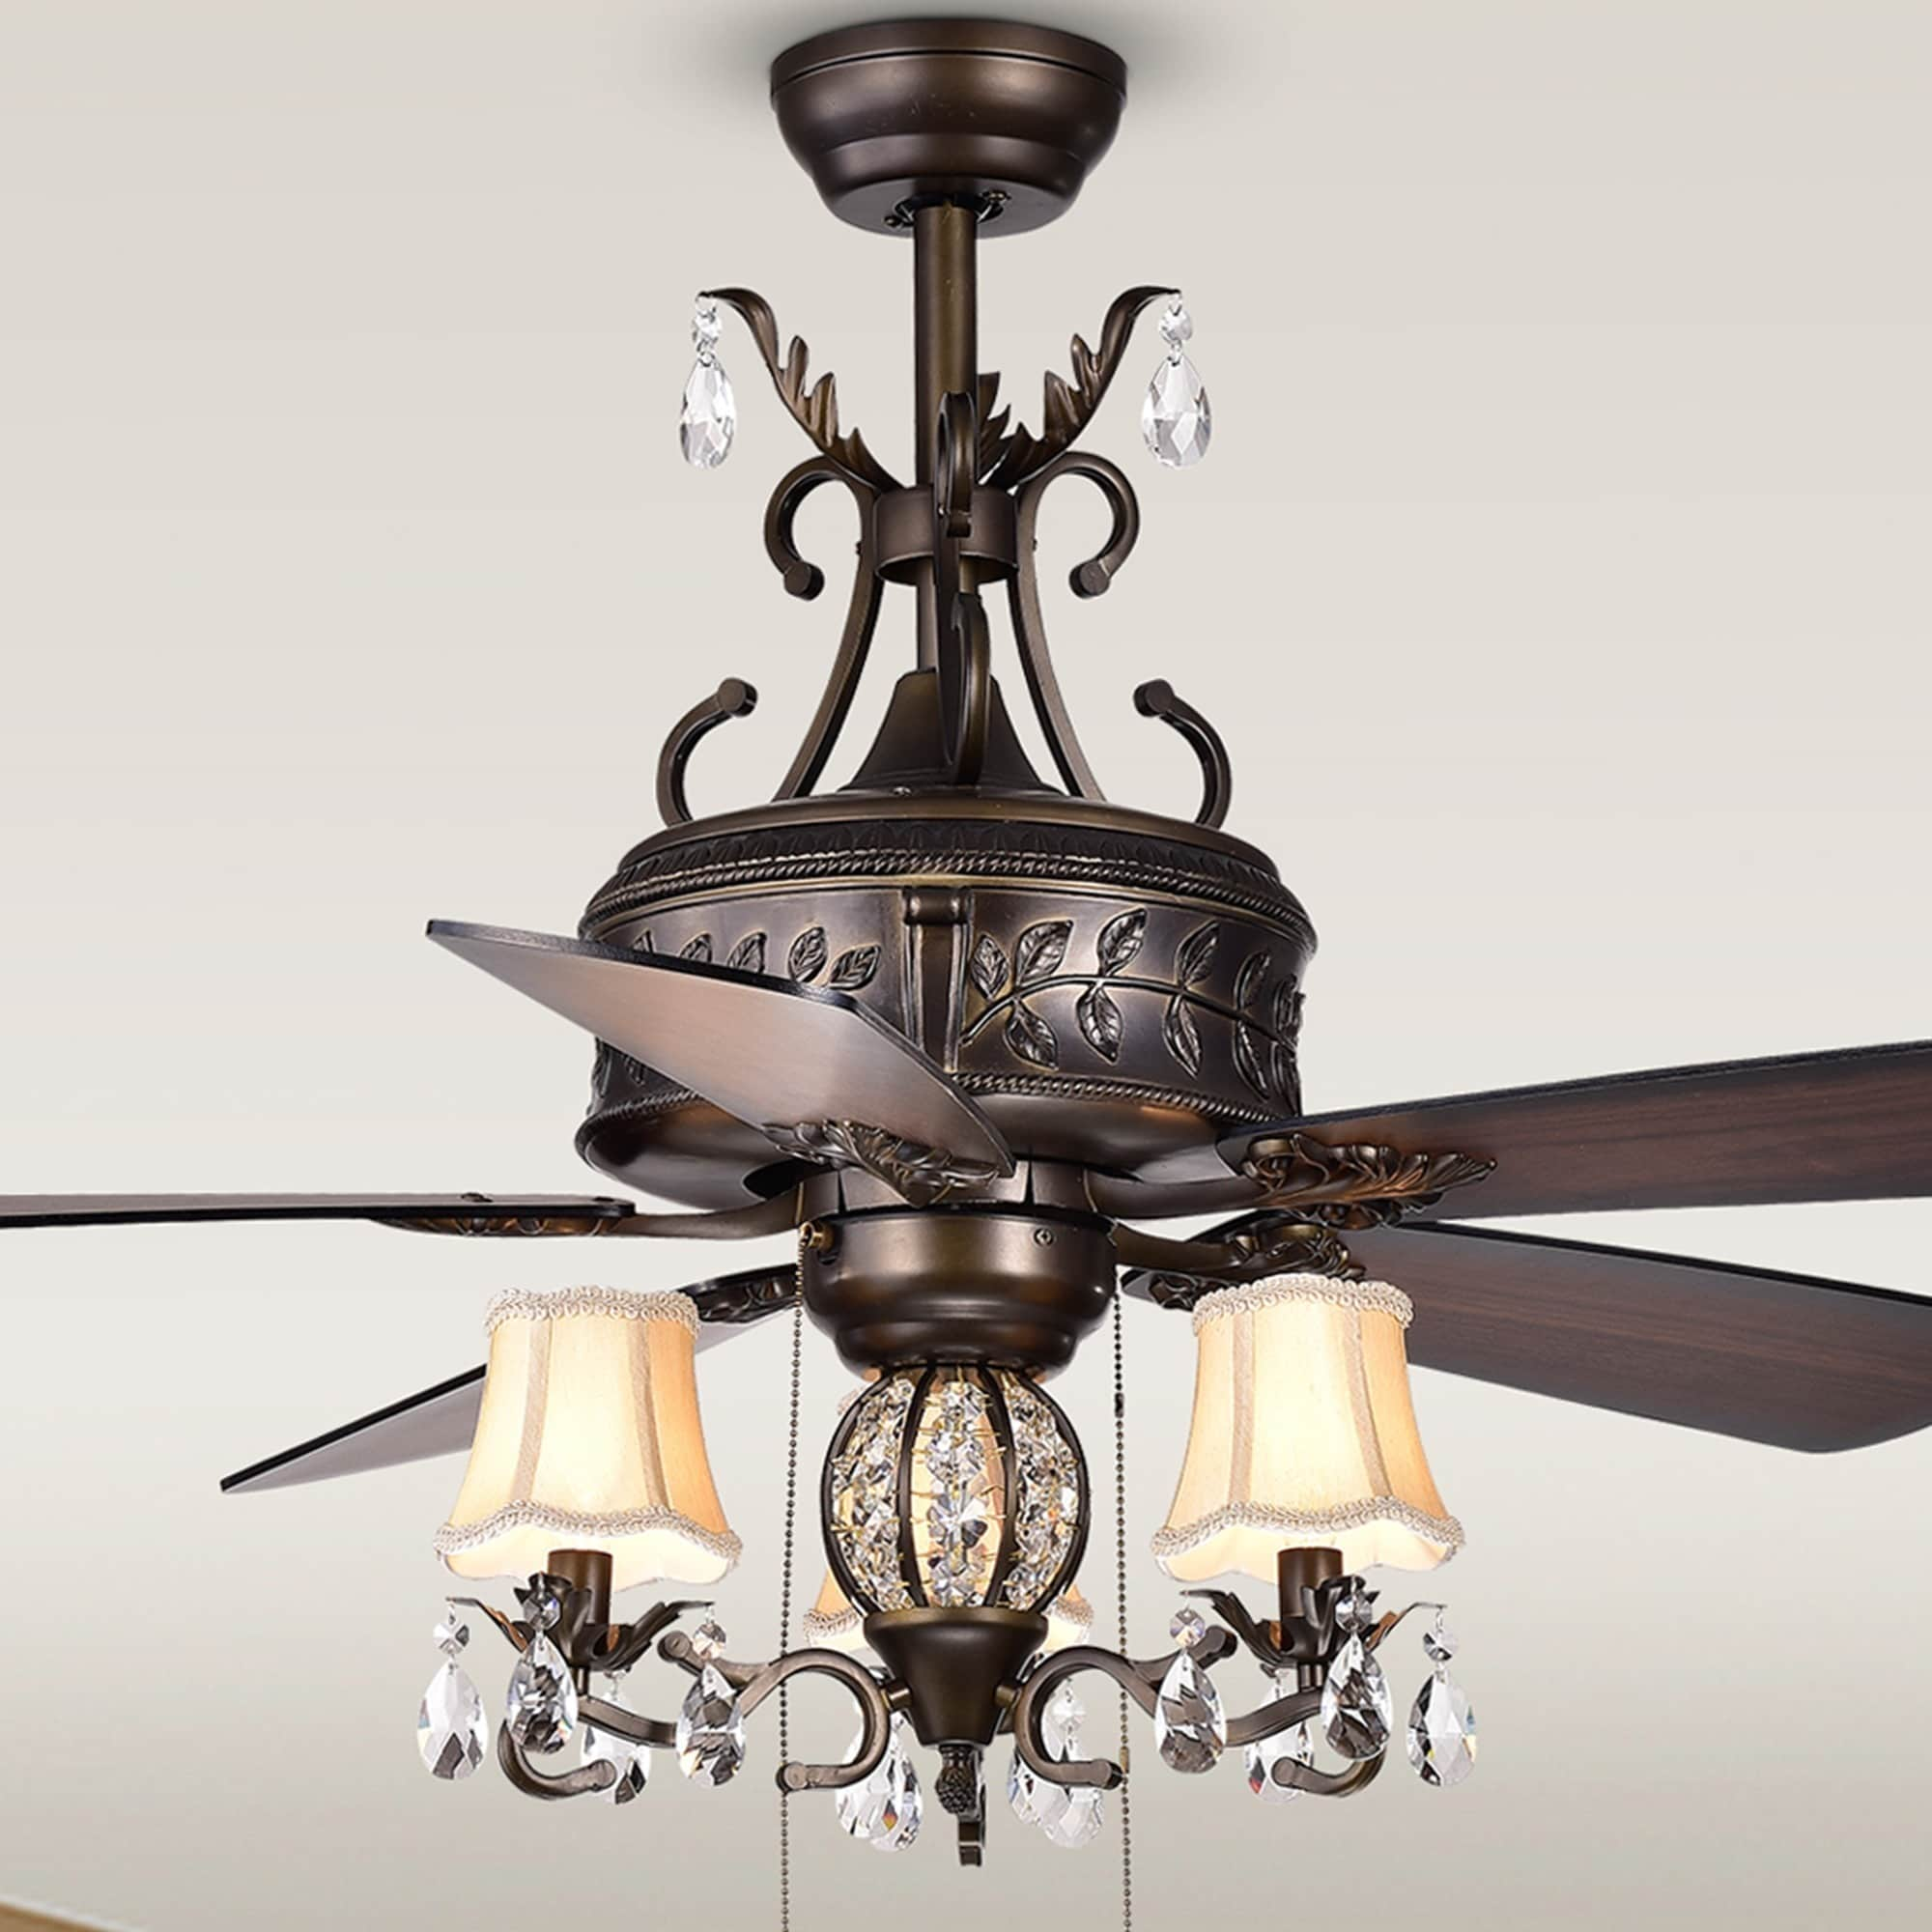 52-Inch Five-Blade Antique Lighted Ceiling Fans with Branched French Chandelier